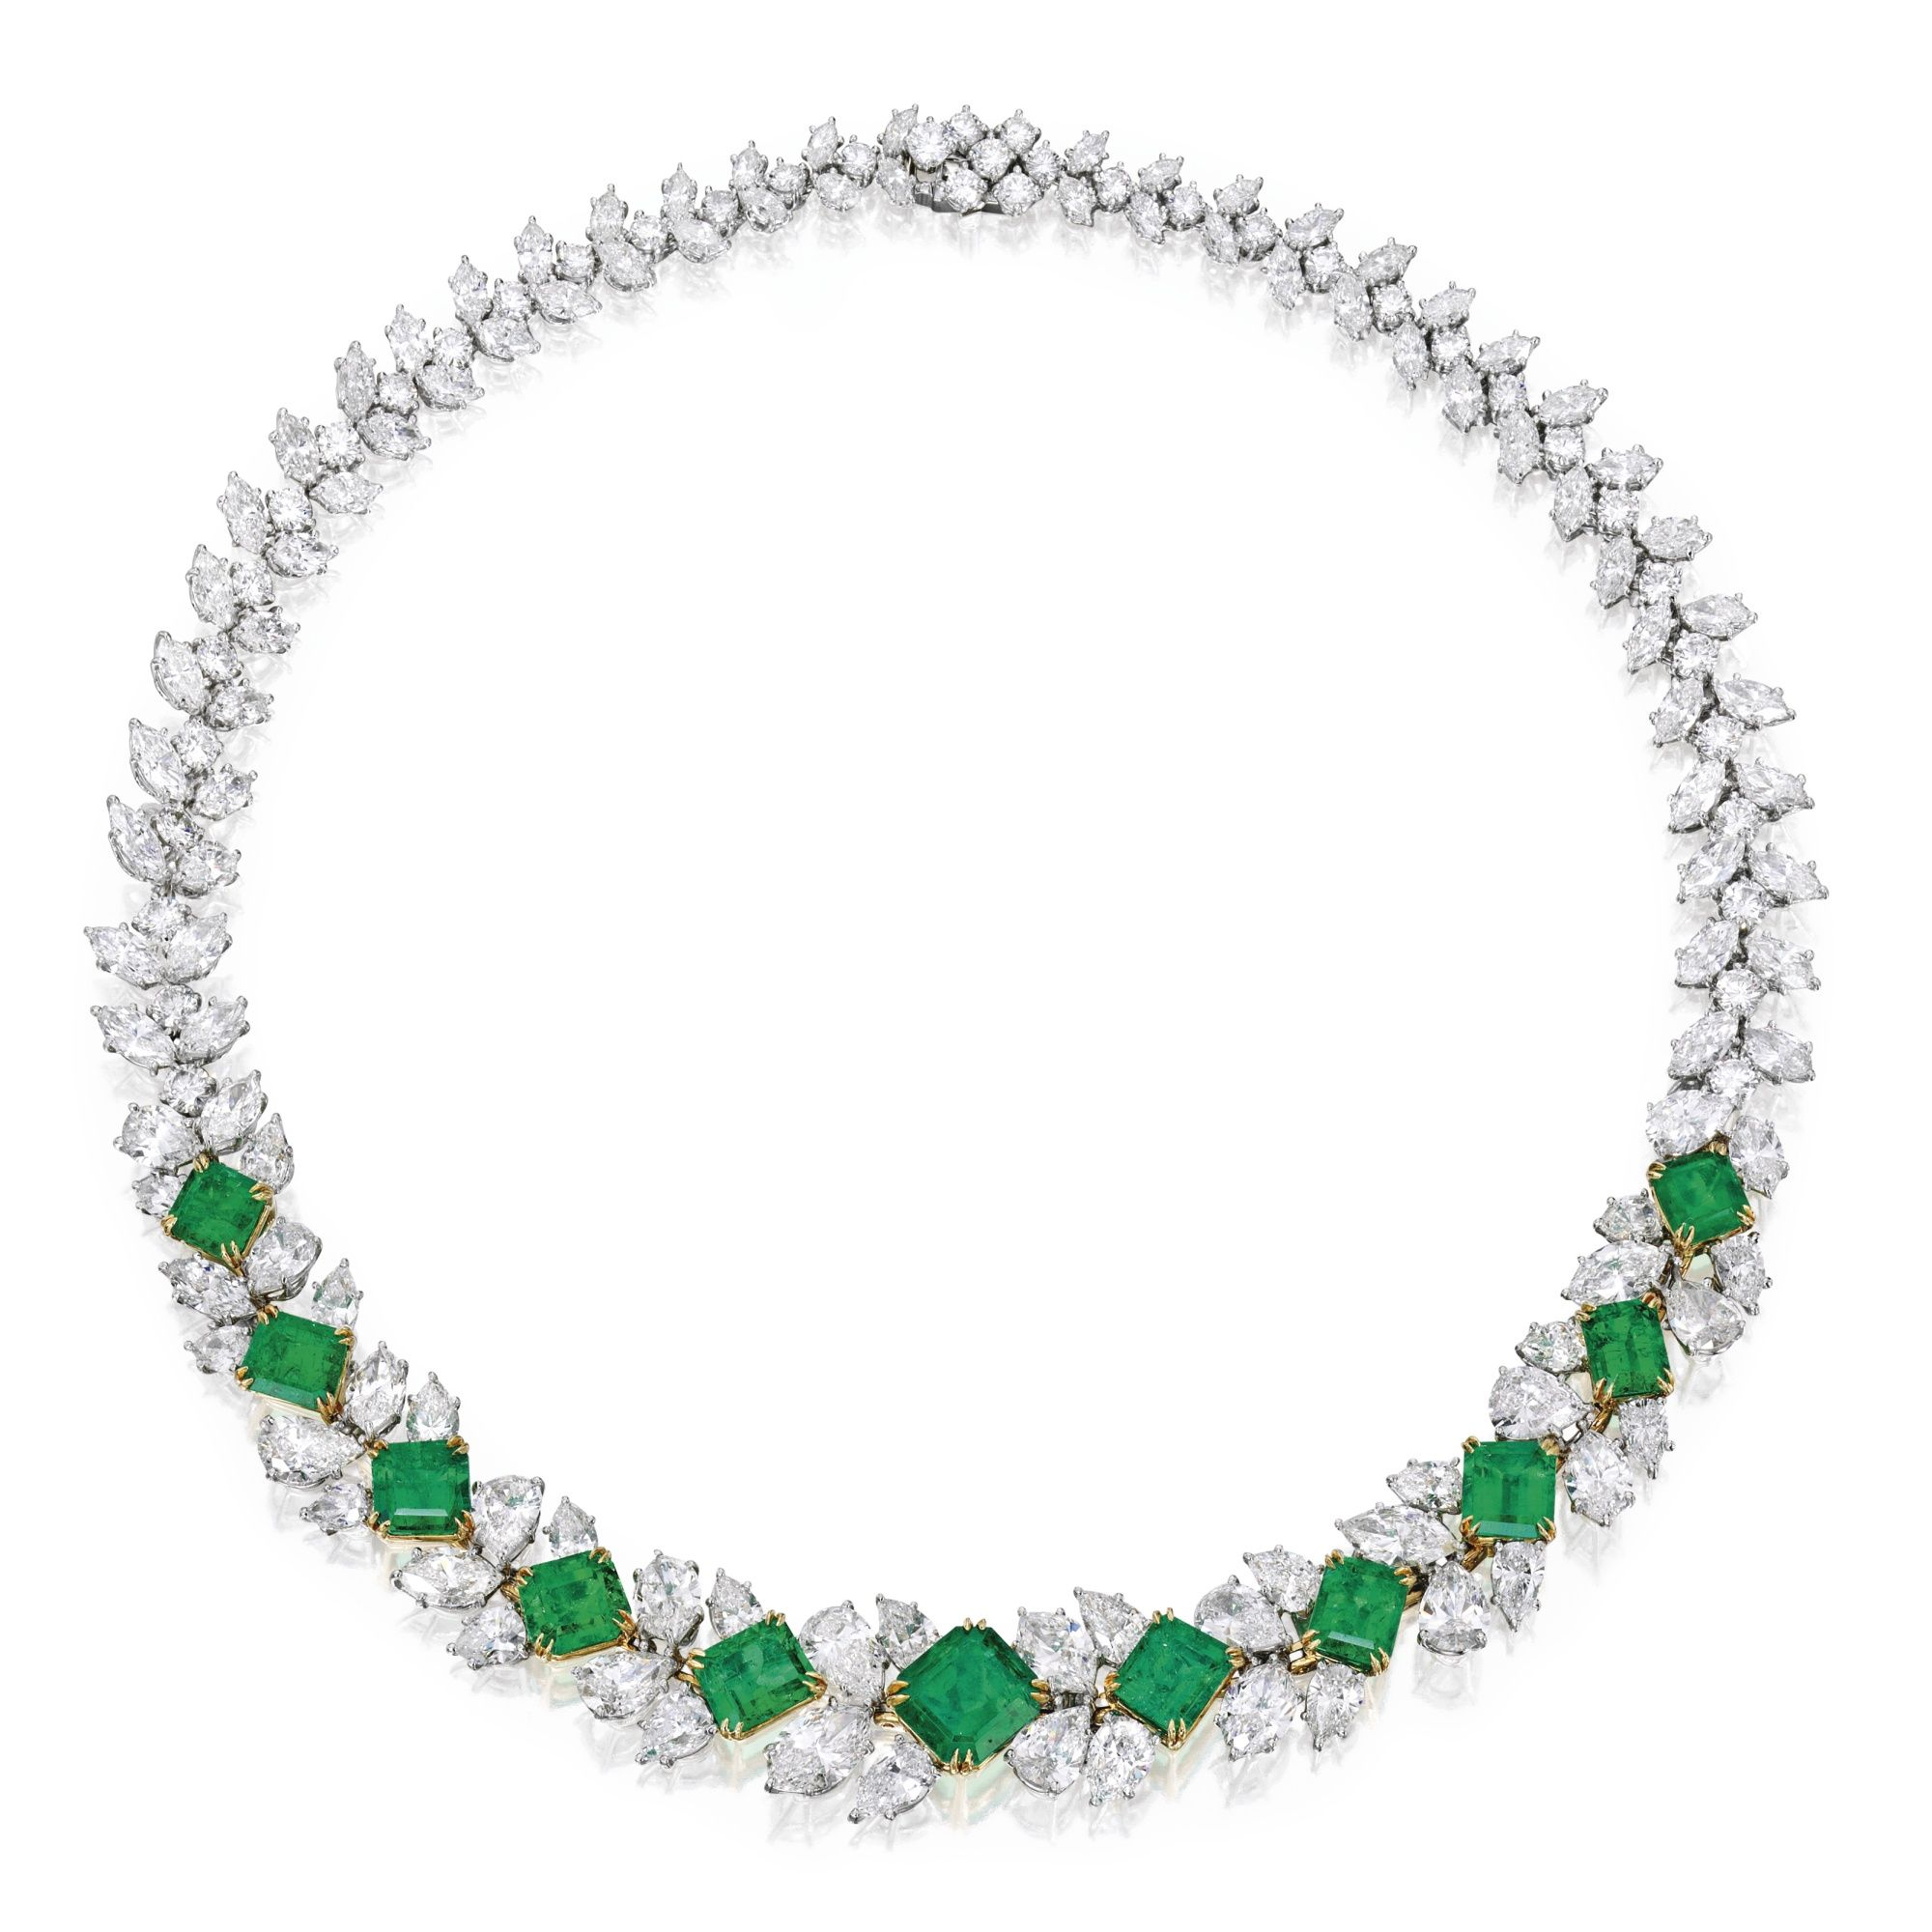 """Harry Winston Emerald Jewelry Necklace Set With 18/""""Chain In 14K White Gold Over"""